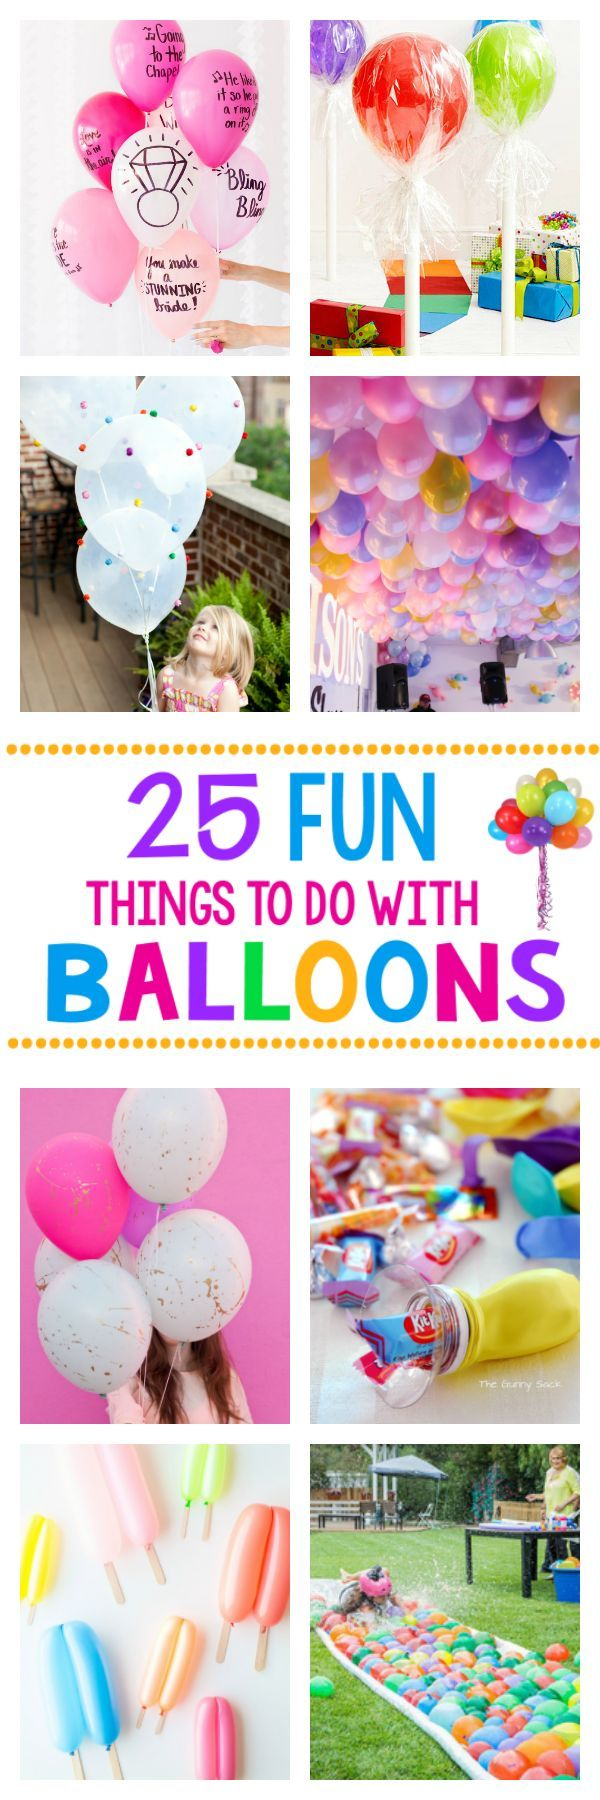 fun stuff for birthday parties ; e7d904fac6067930ec179f502c7ad8a1